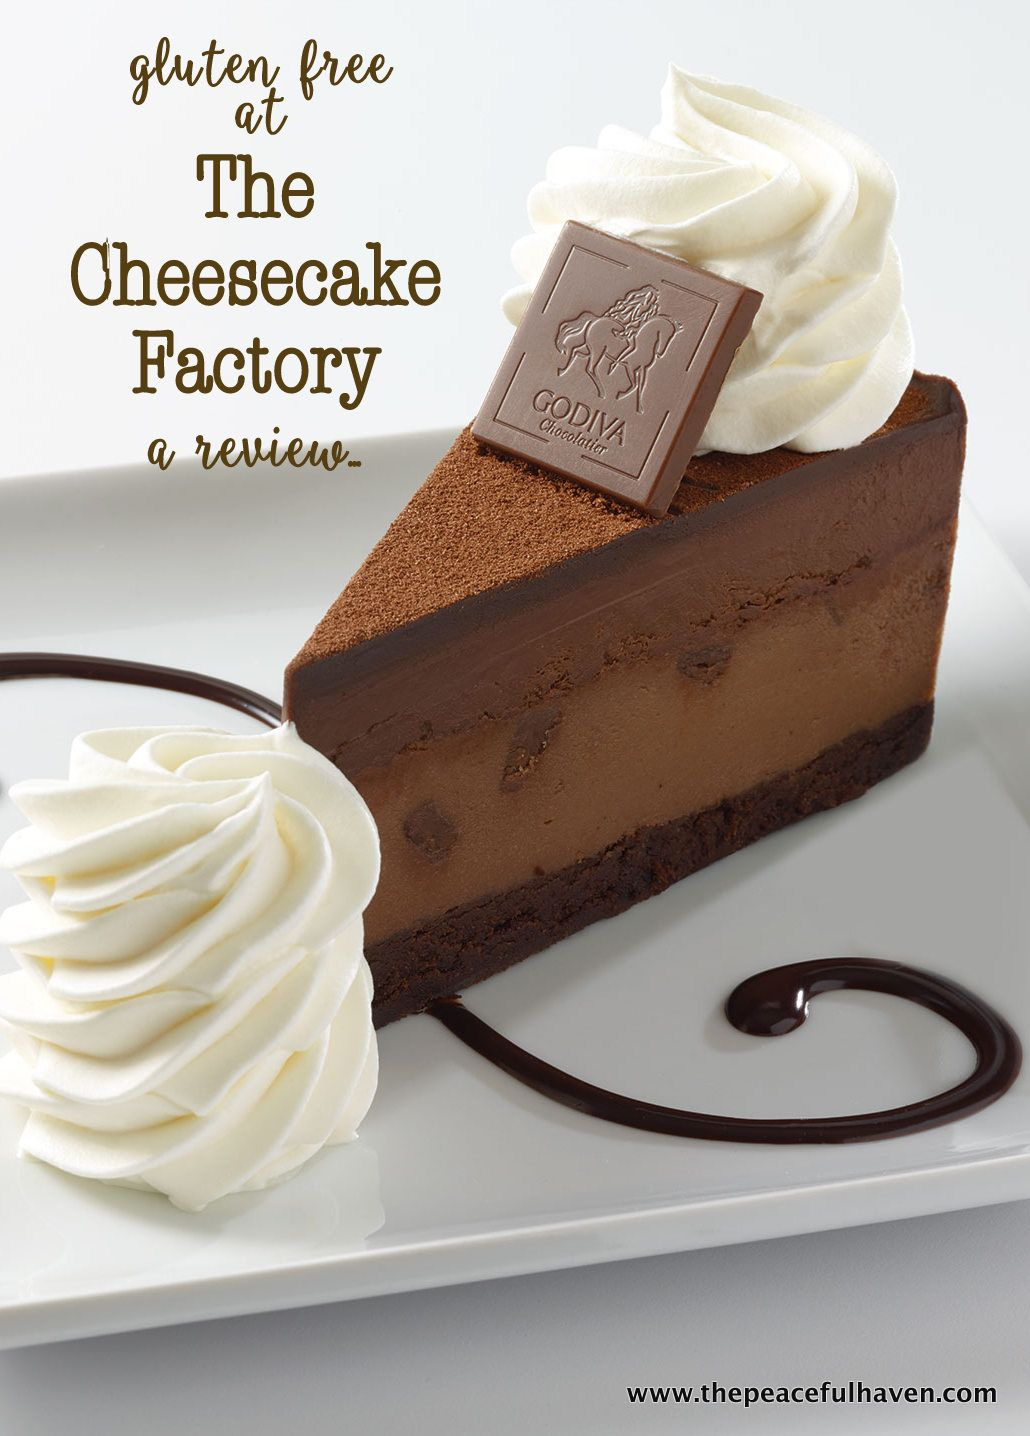 Gluten Free At The Cheesecake Factory The Peaceful Haven Cheesecake Factory Gluten Free Dairy Free Cheesecake Gluten Free Cheesecake